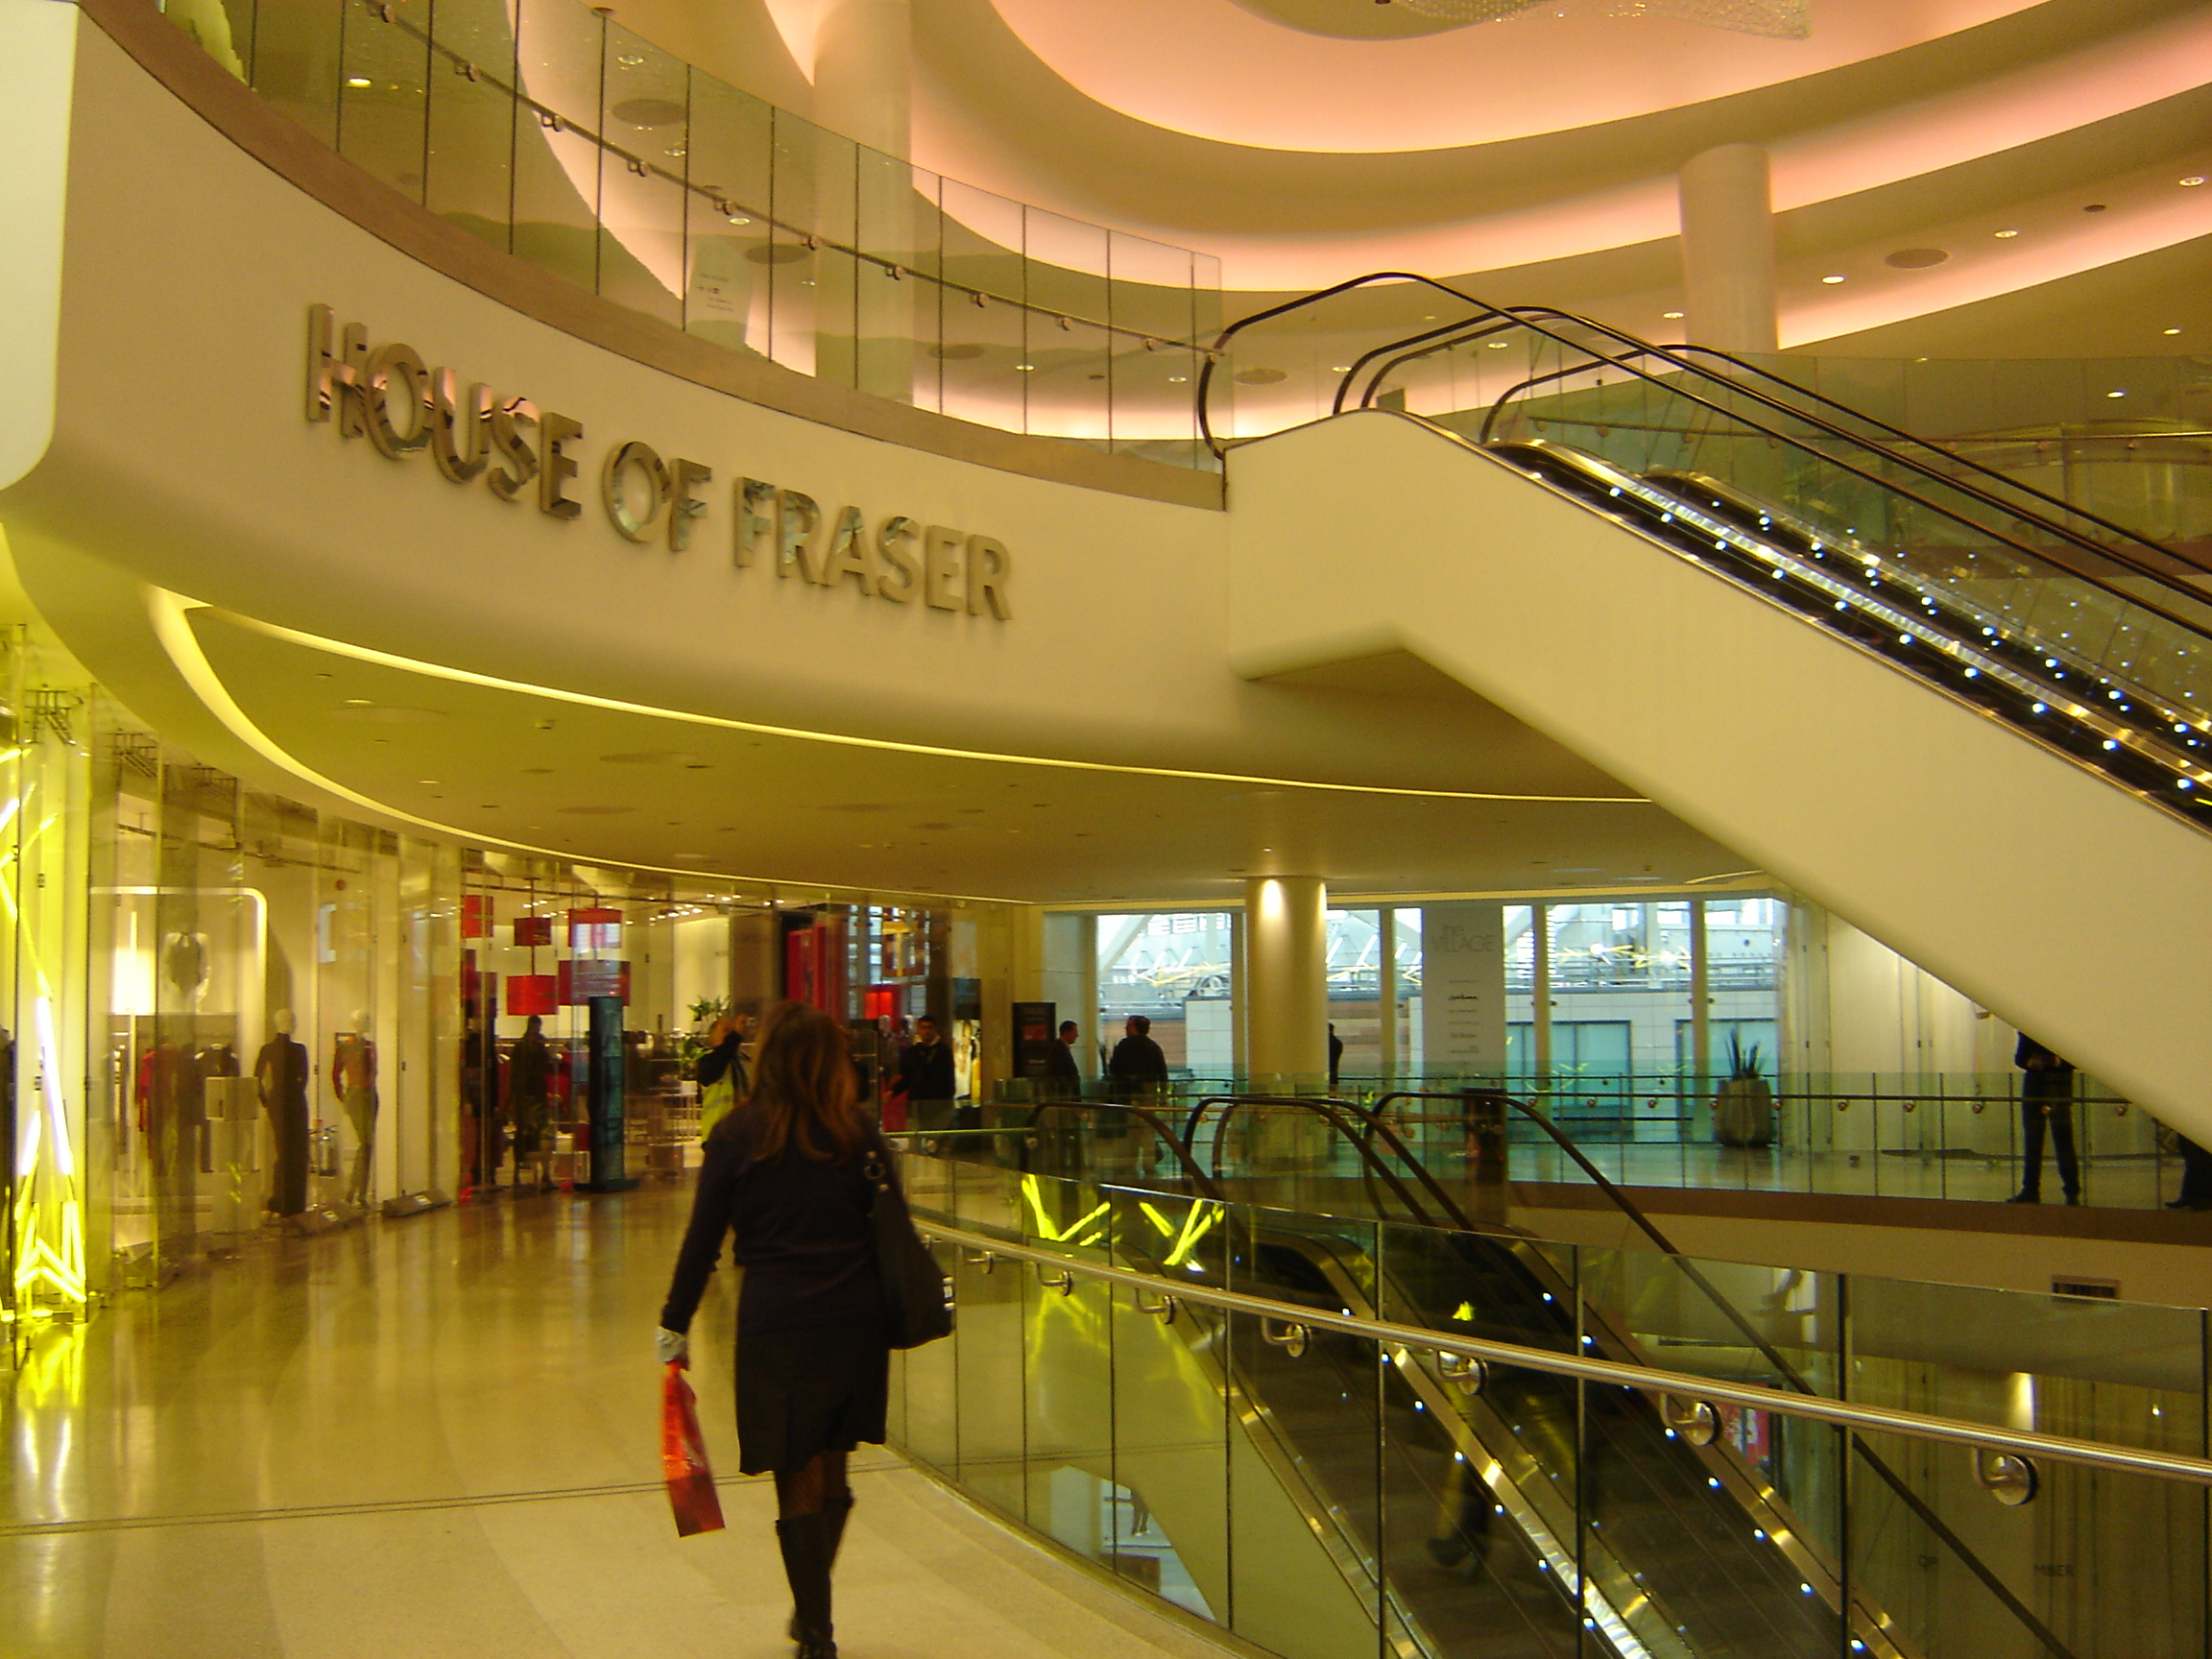 House of fraser wikiwand for Housse of fraser